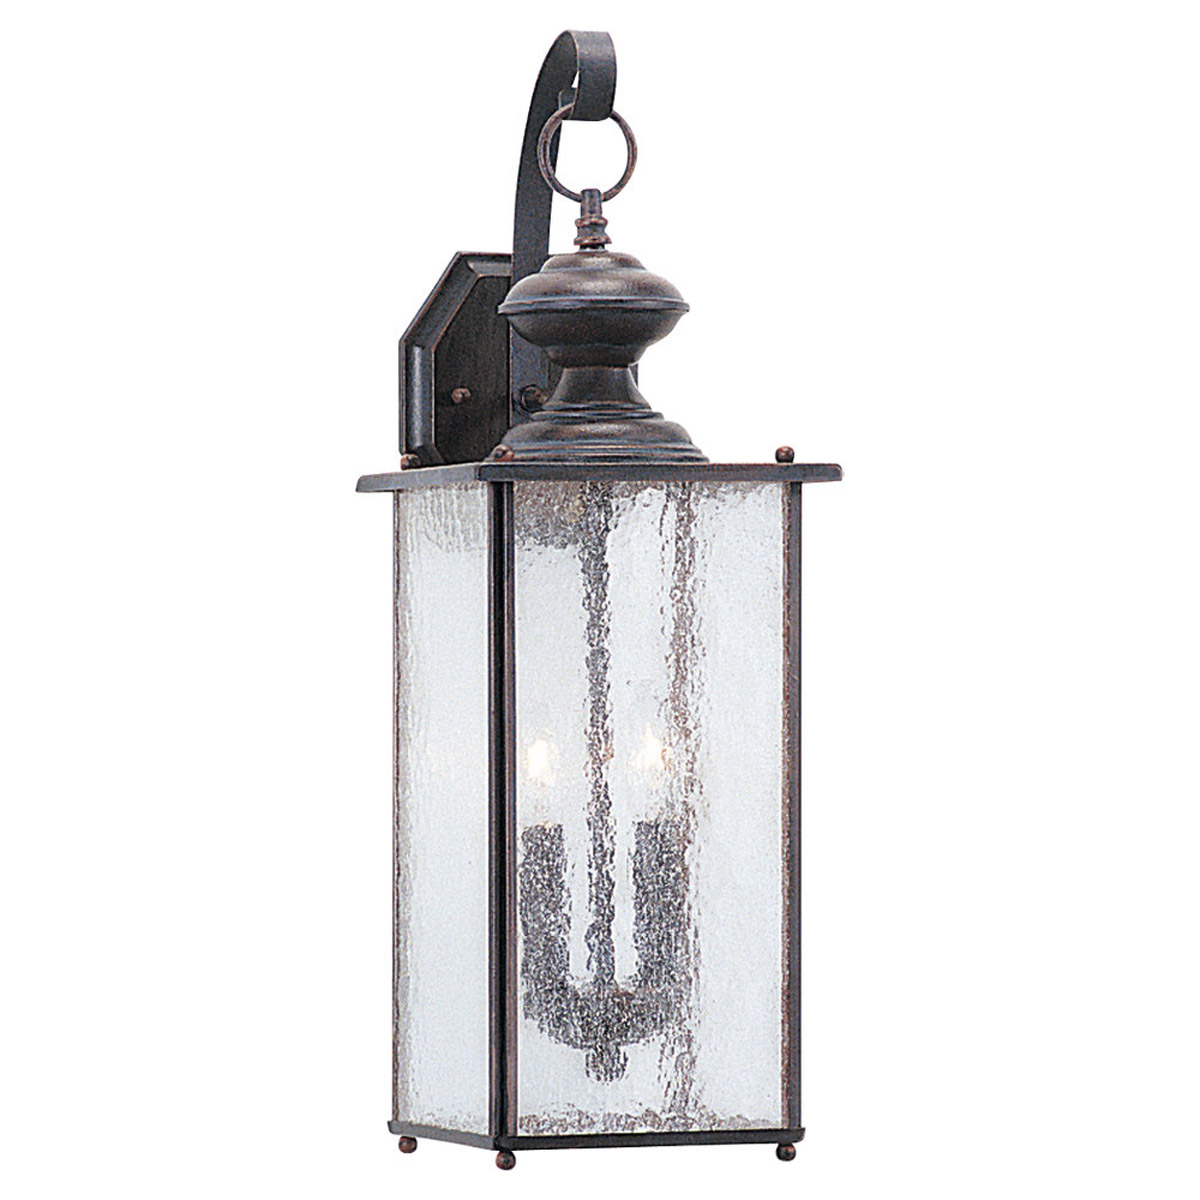 Sea Gull Lighting Jamestowne 2 Light Outdoor Wall Lantern in Textured Rust Patina 8883-08 photo